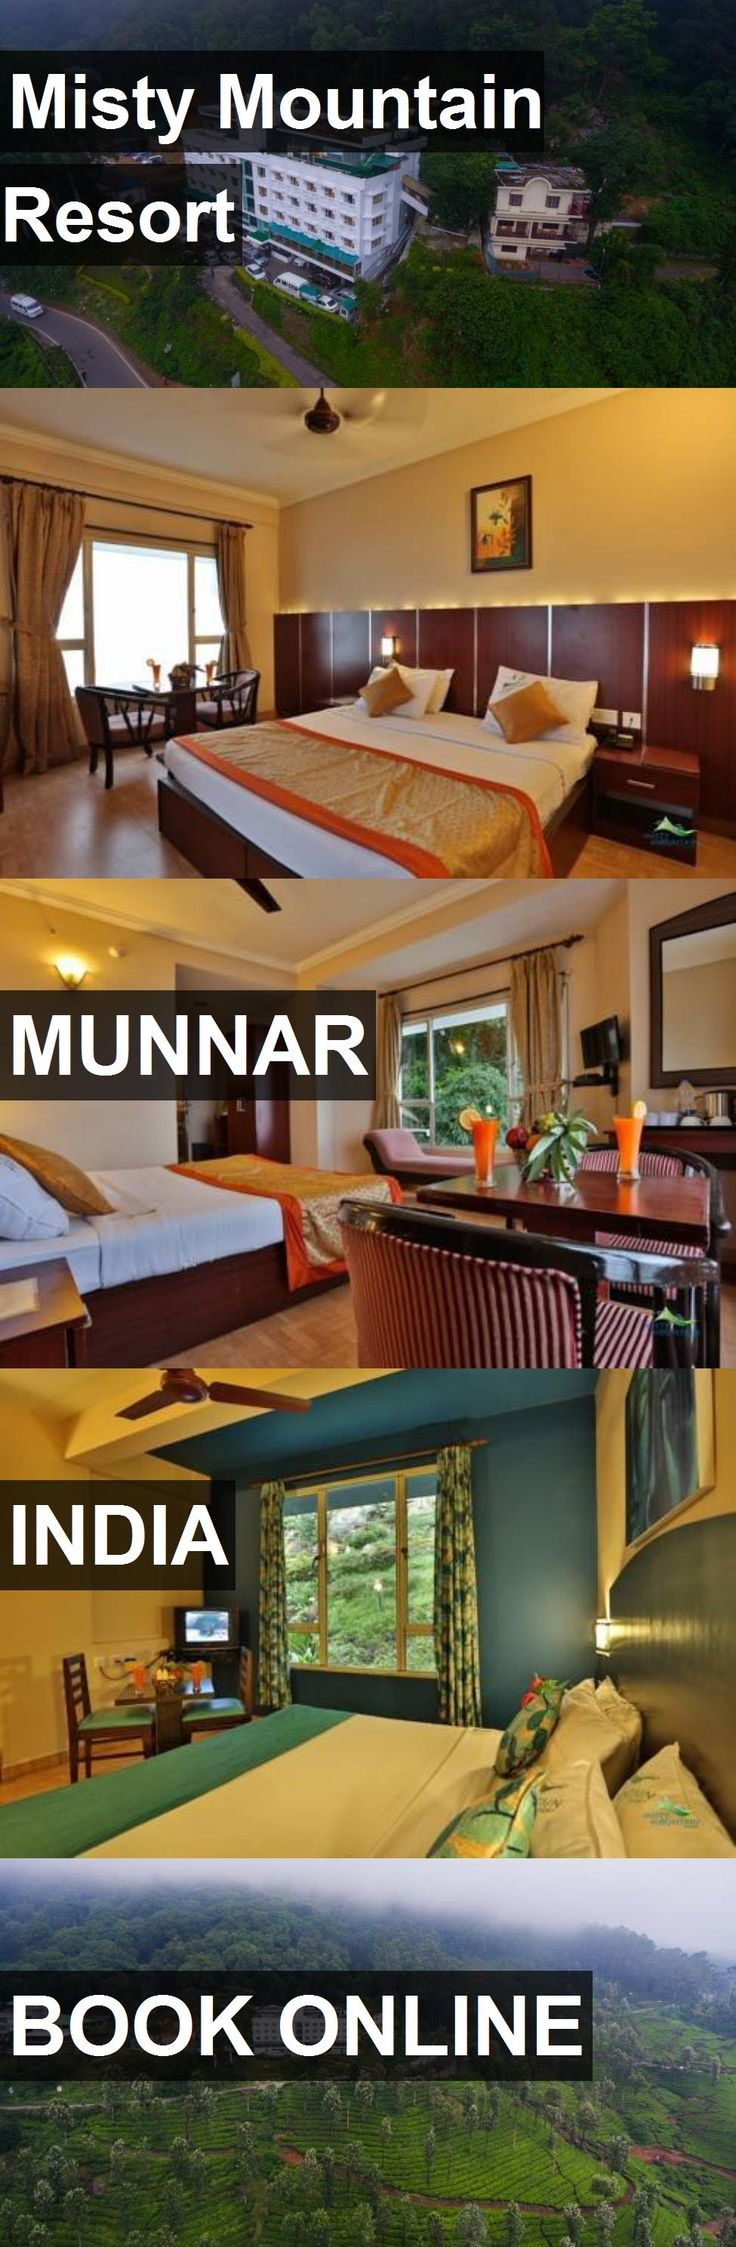 Hotel Misty Mountain Resort in Munnar, India. For more information, photos, reviews and best prices please follow the link. #India #Munnar #hotel #travel #vacation